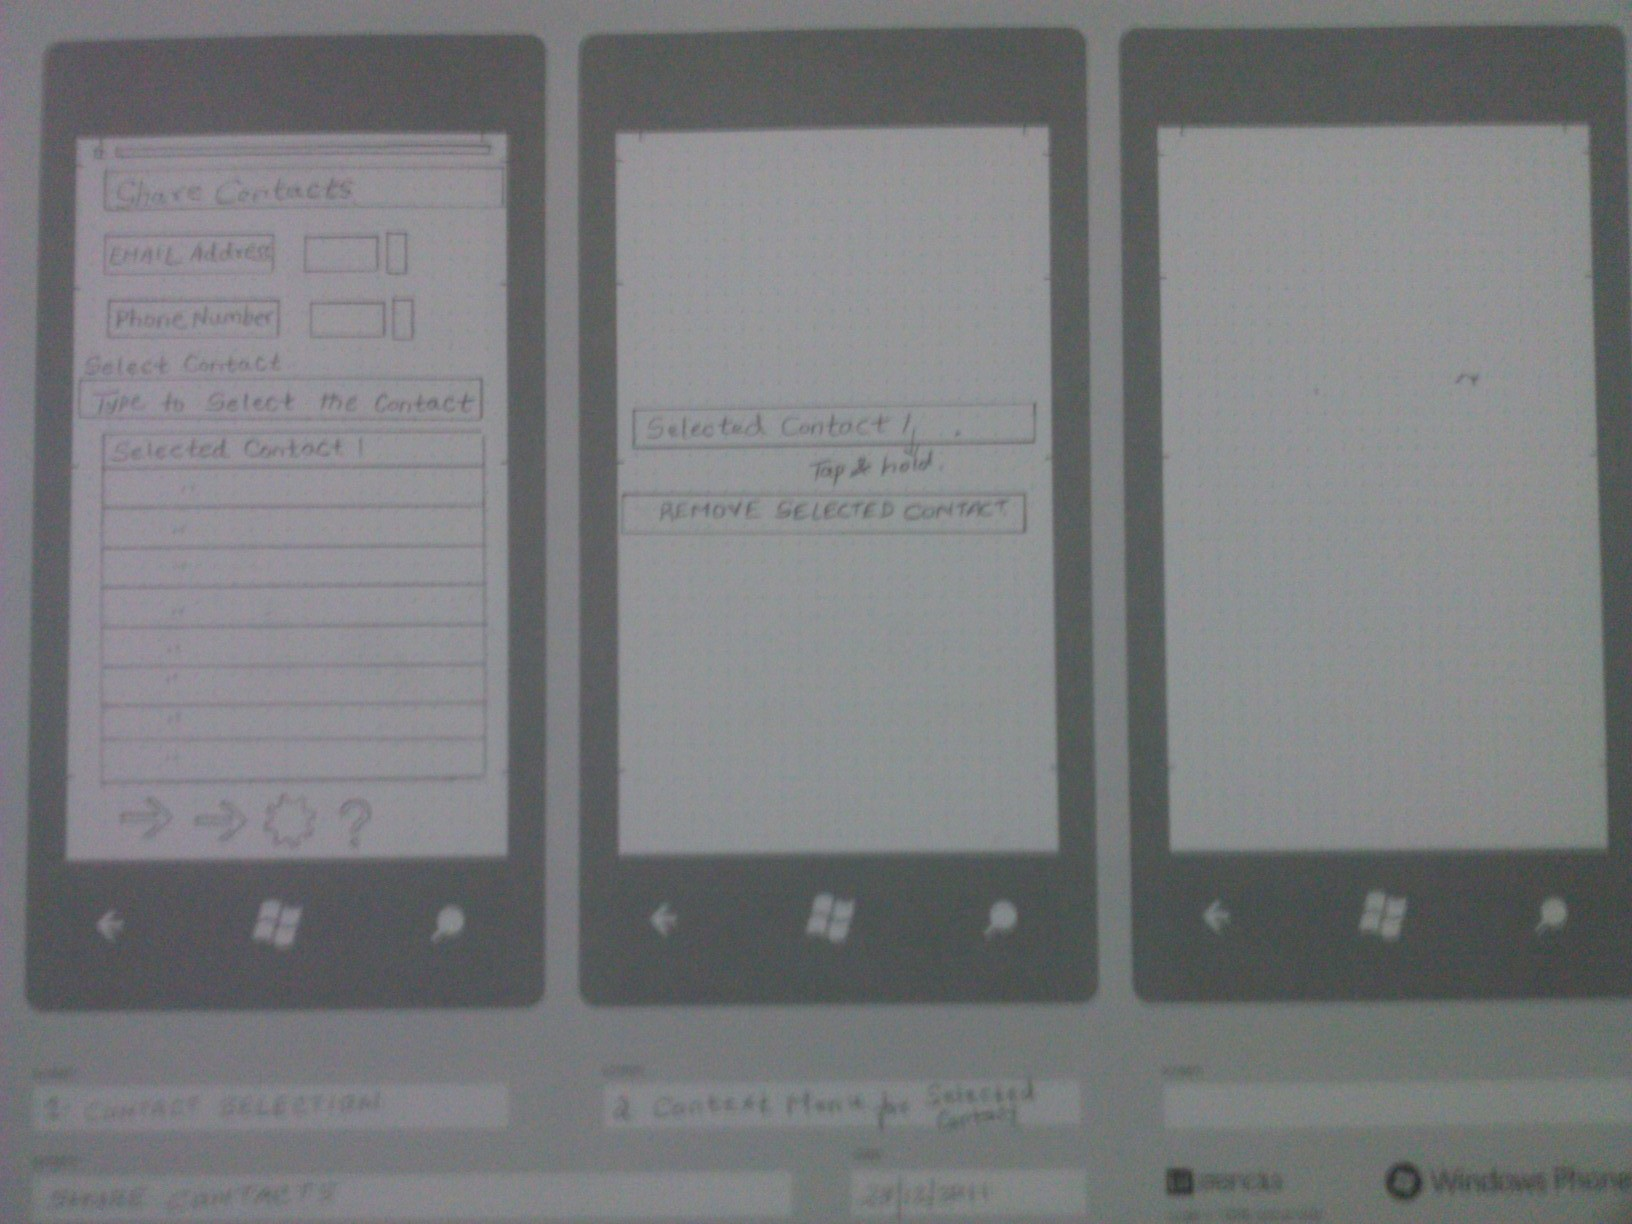 UI Stencils and my Share Contacts Windows Phone App